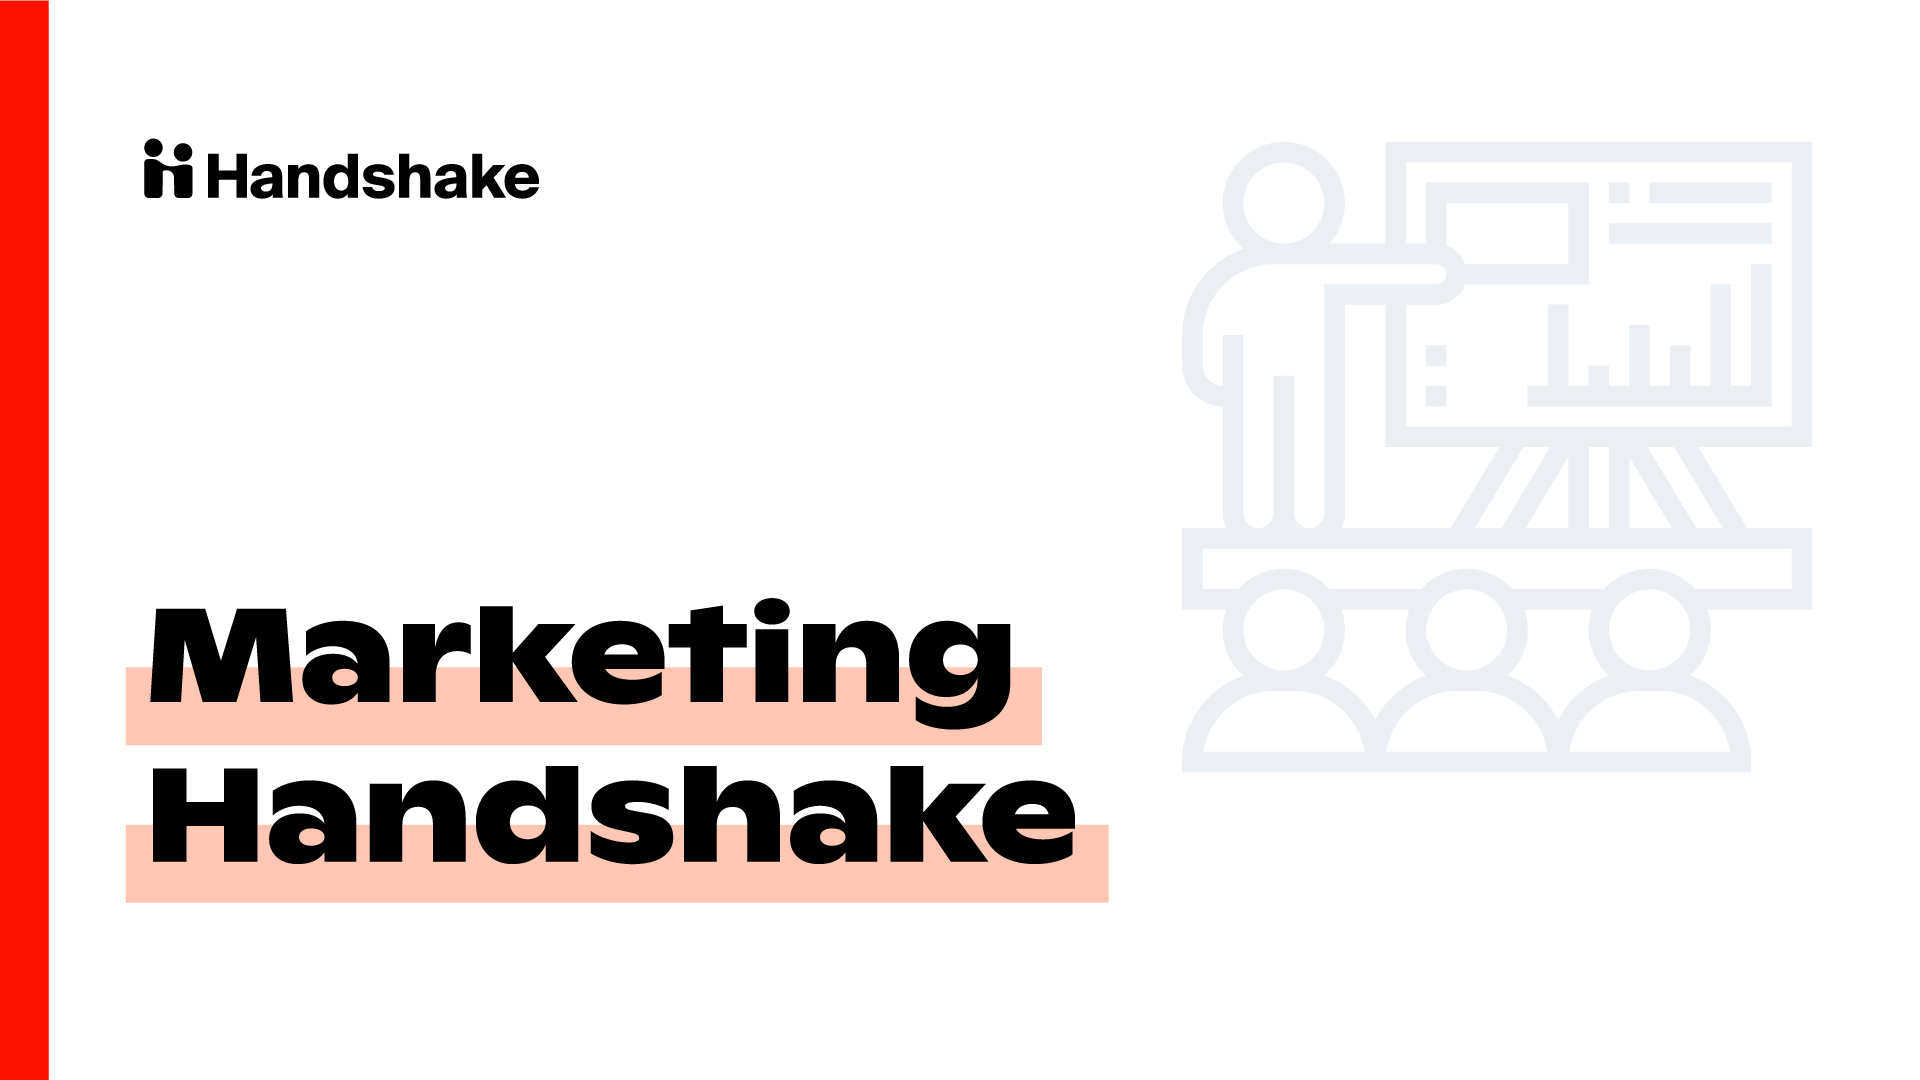 Marketing Handshake